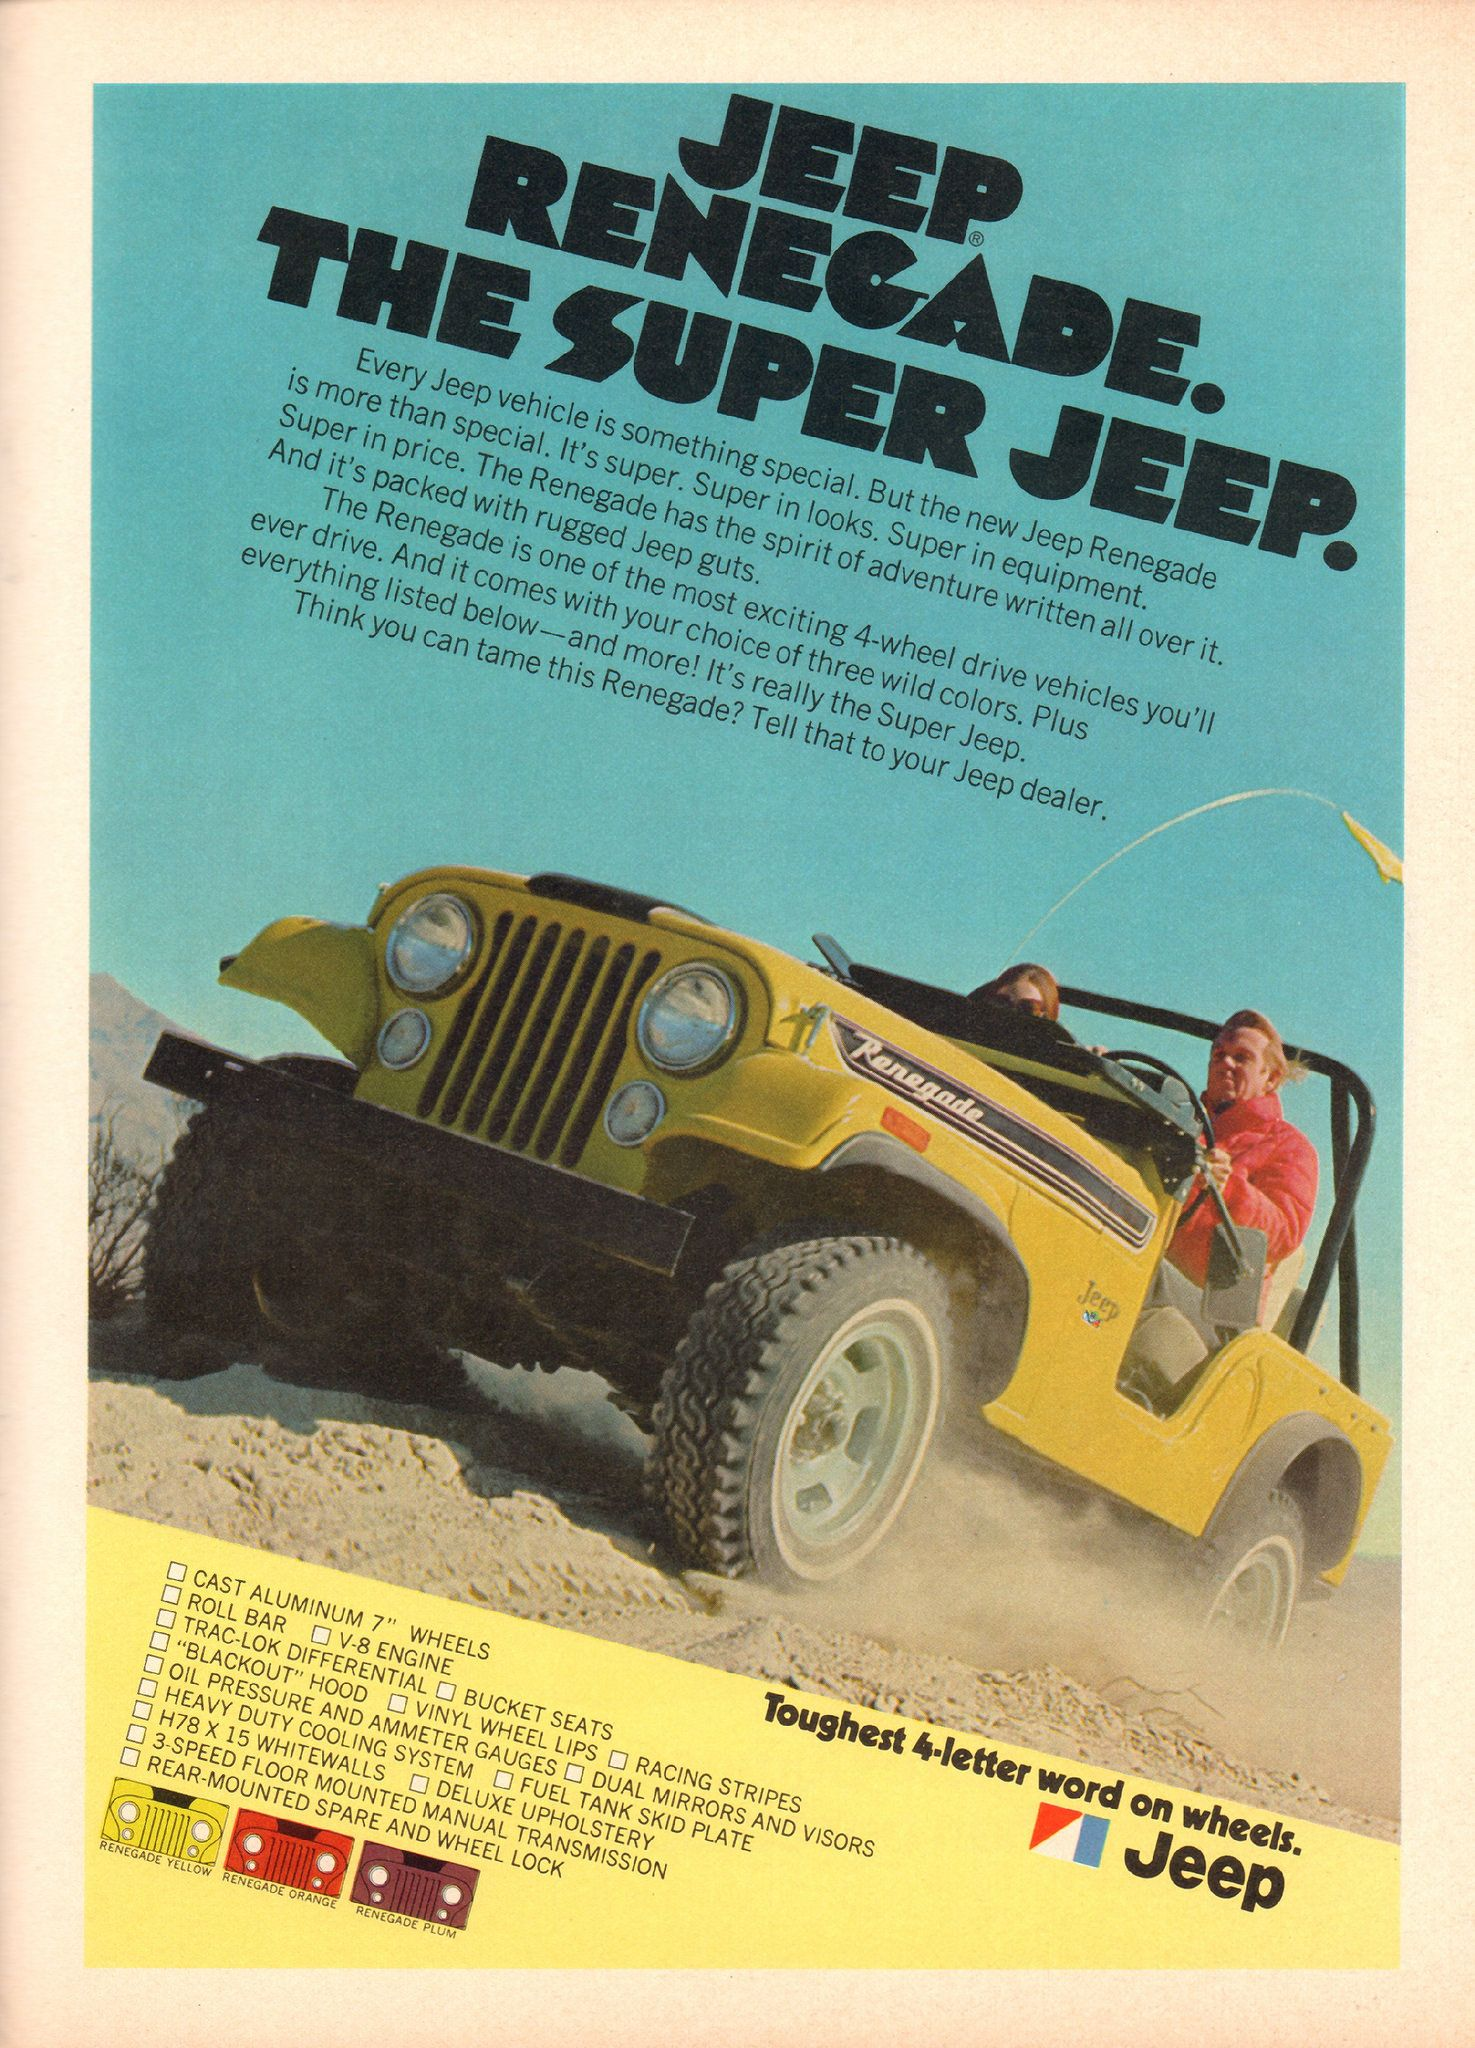 1972 Amc Jeep Renegade Advertisement Hot Rod Magazine May And Transmissions Https Flickr P 28xbqaj